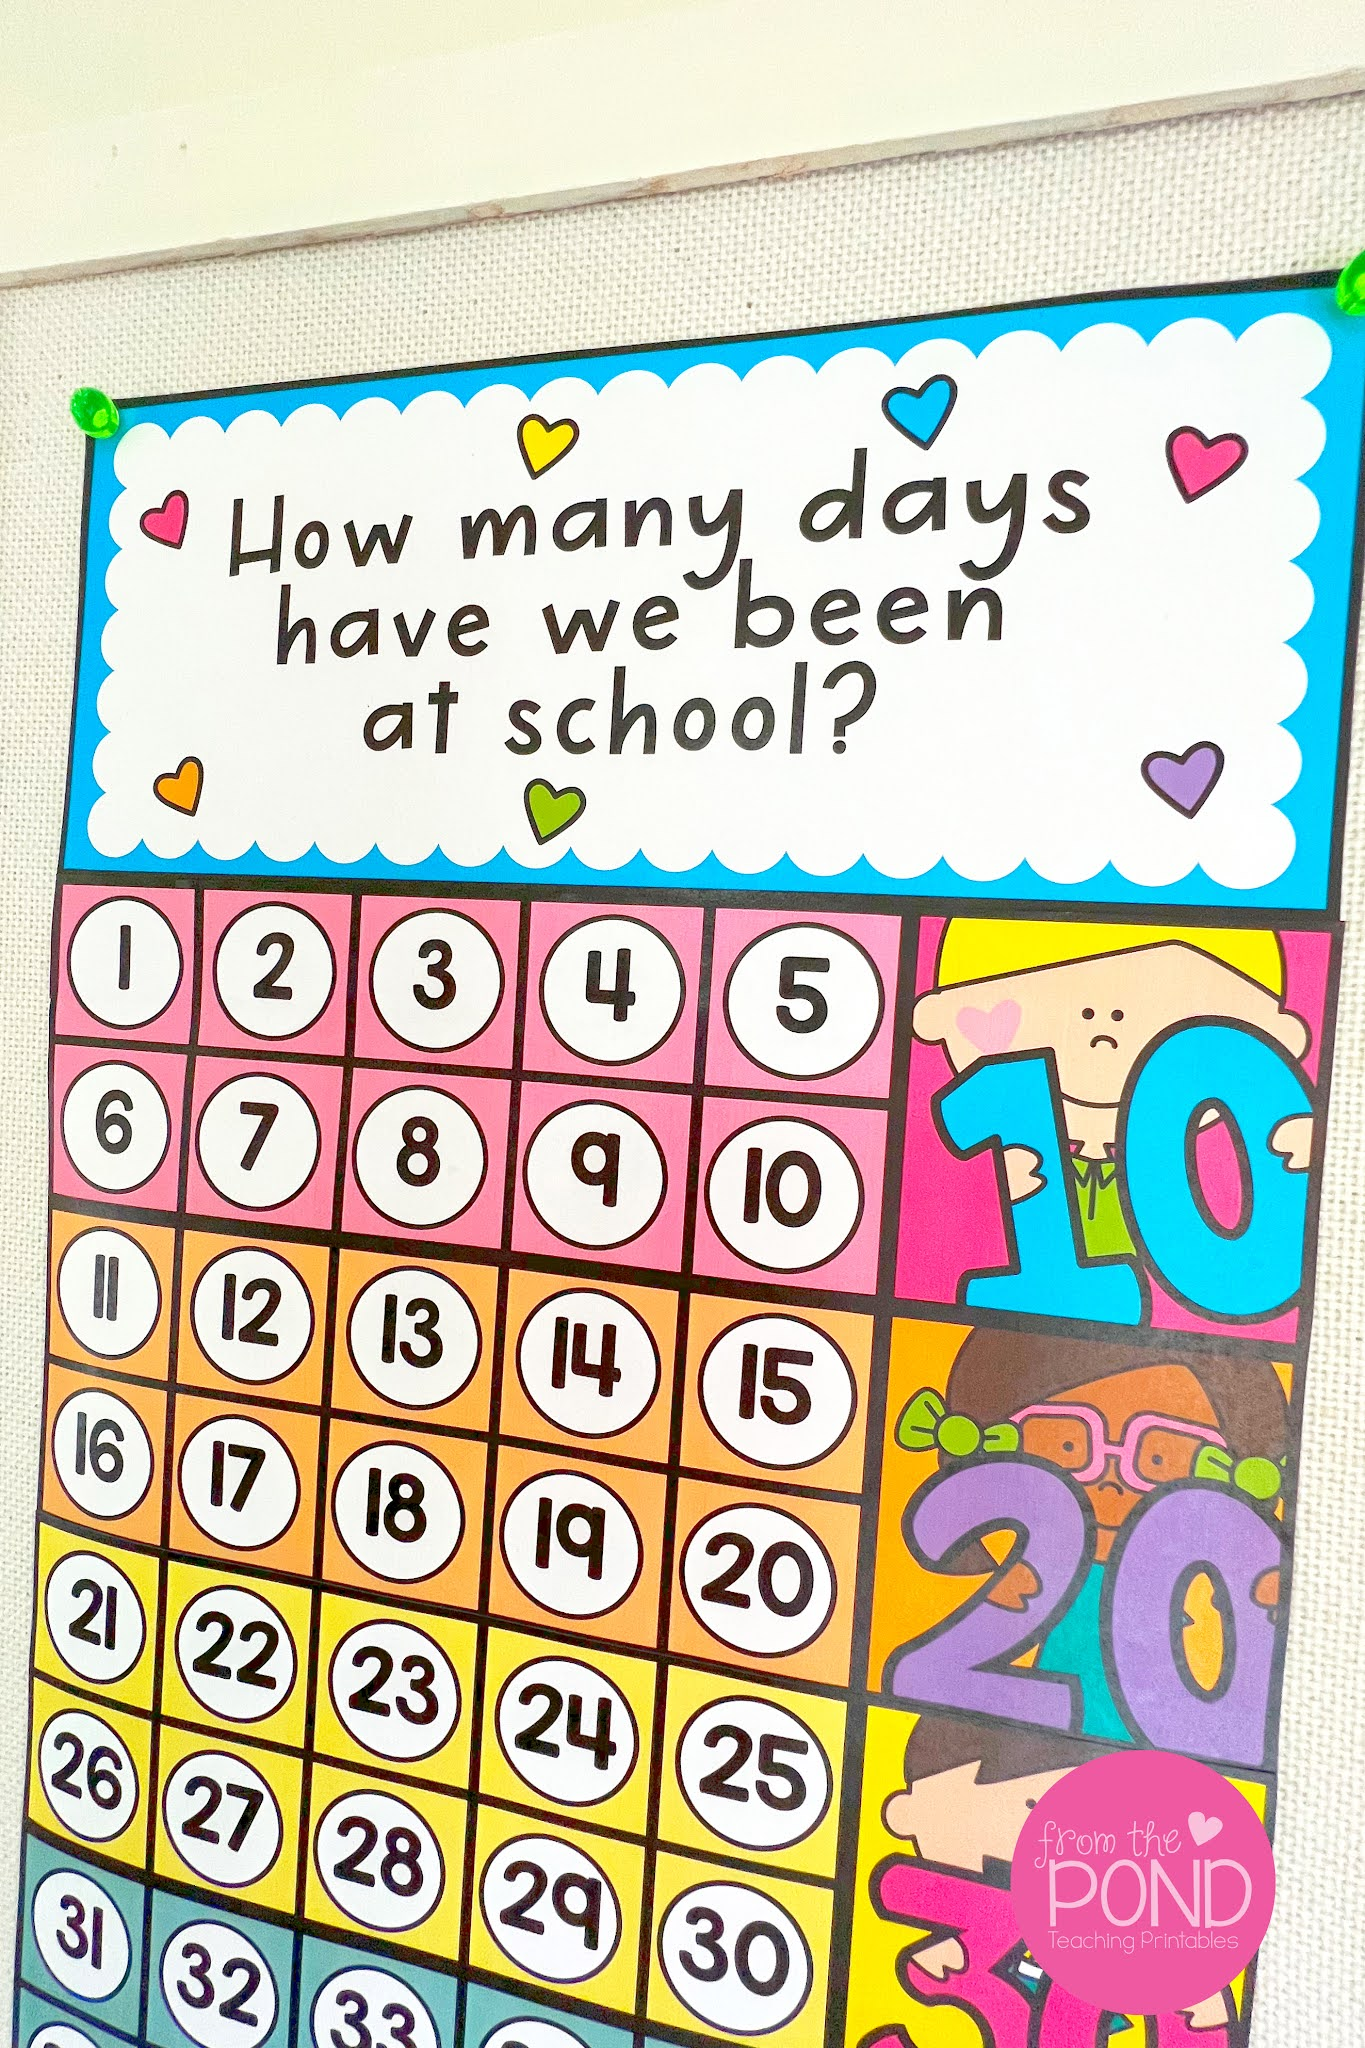 counting days at school